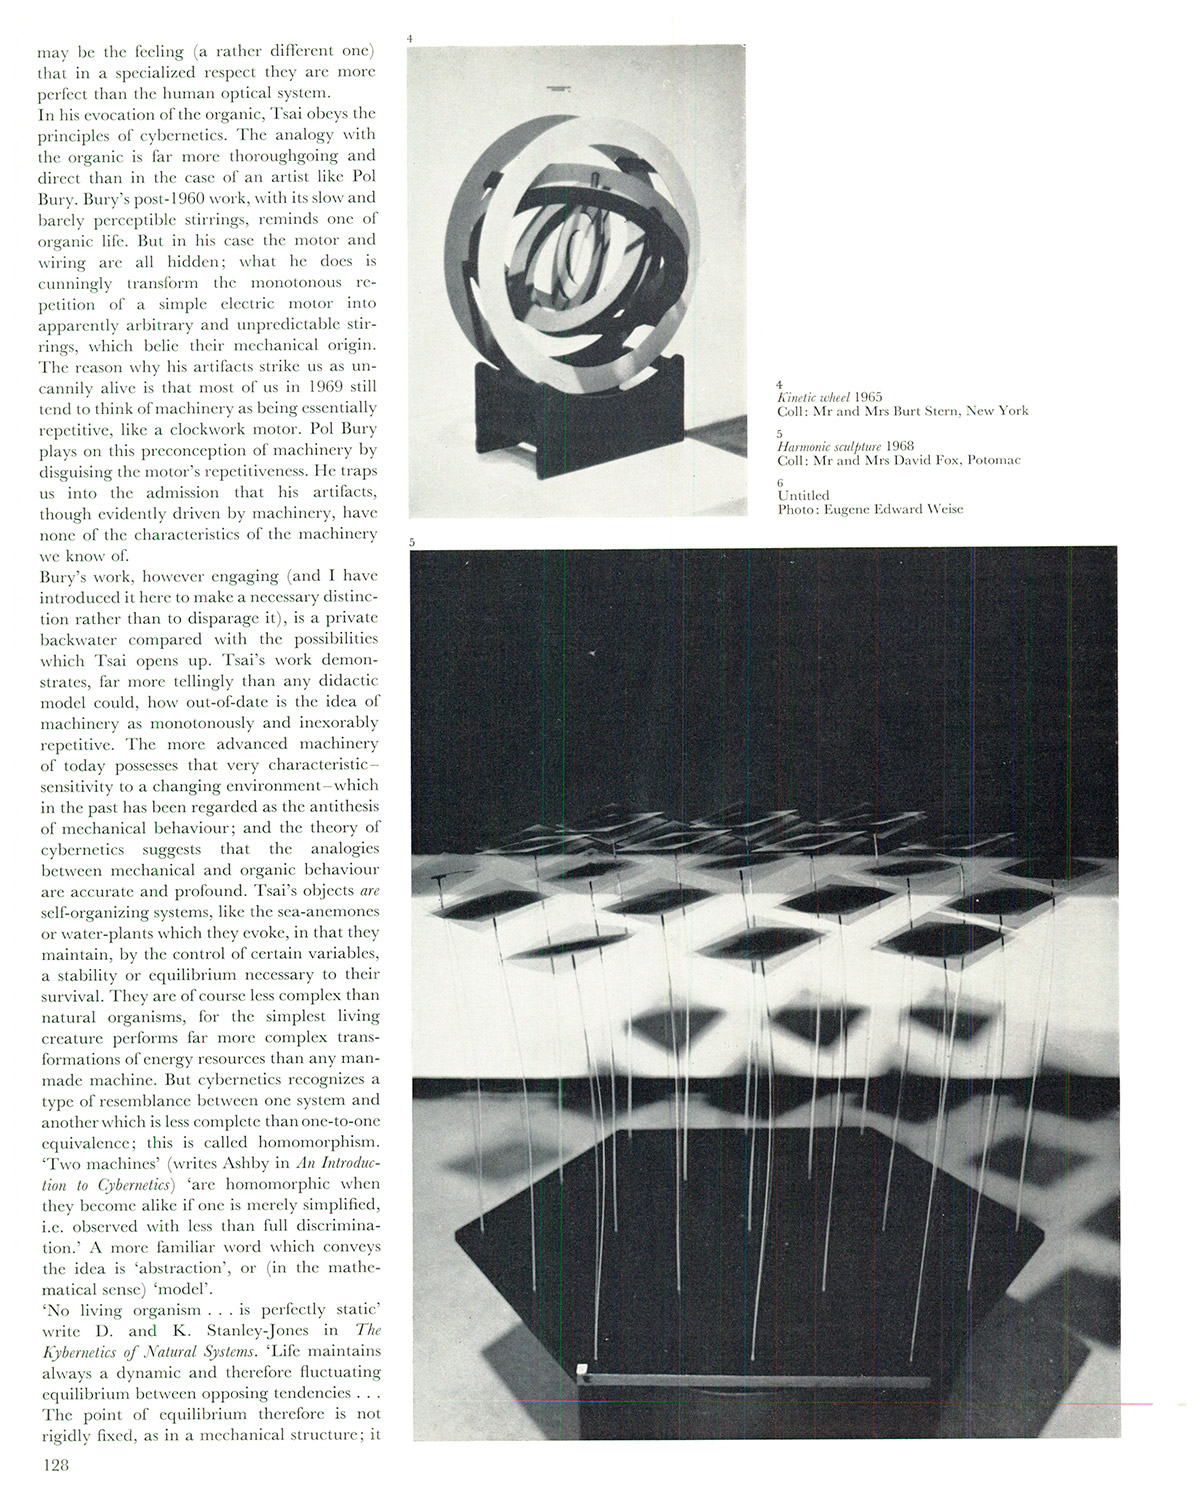 The cybernetic sculpture of Tsai Wen-ying. Studio International, Vol 177, No 909, March 1969. p. 128.